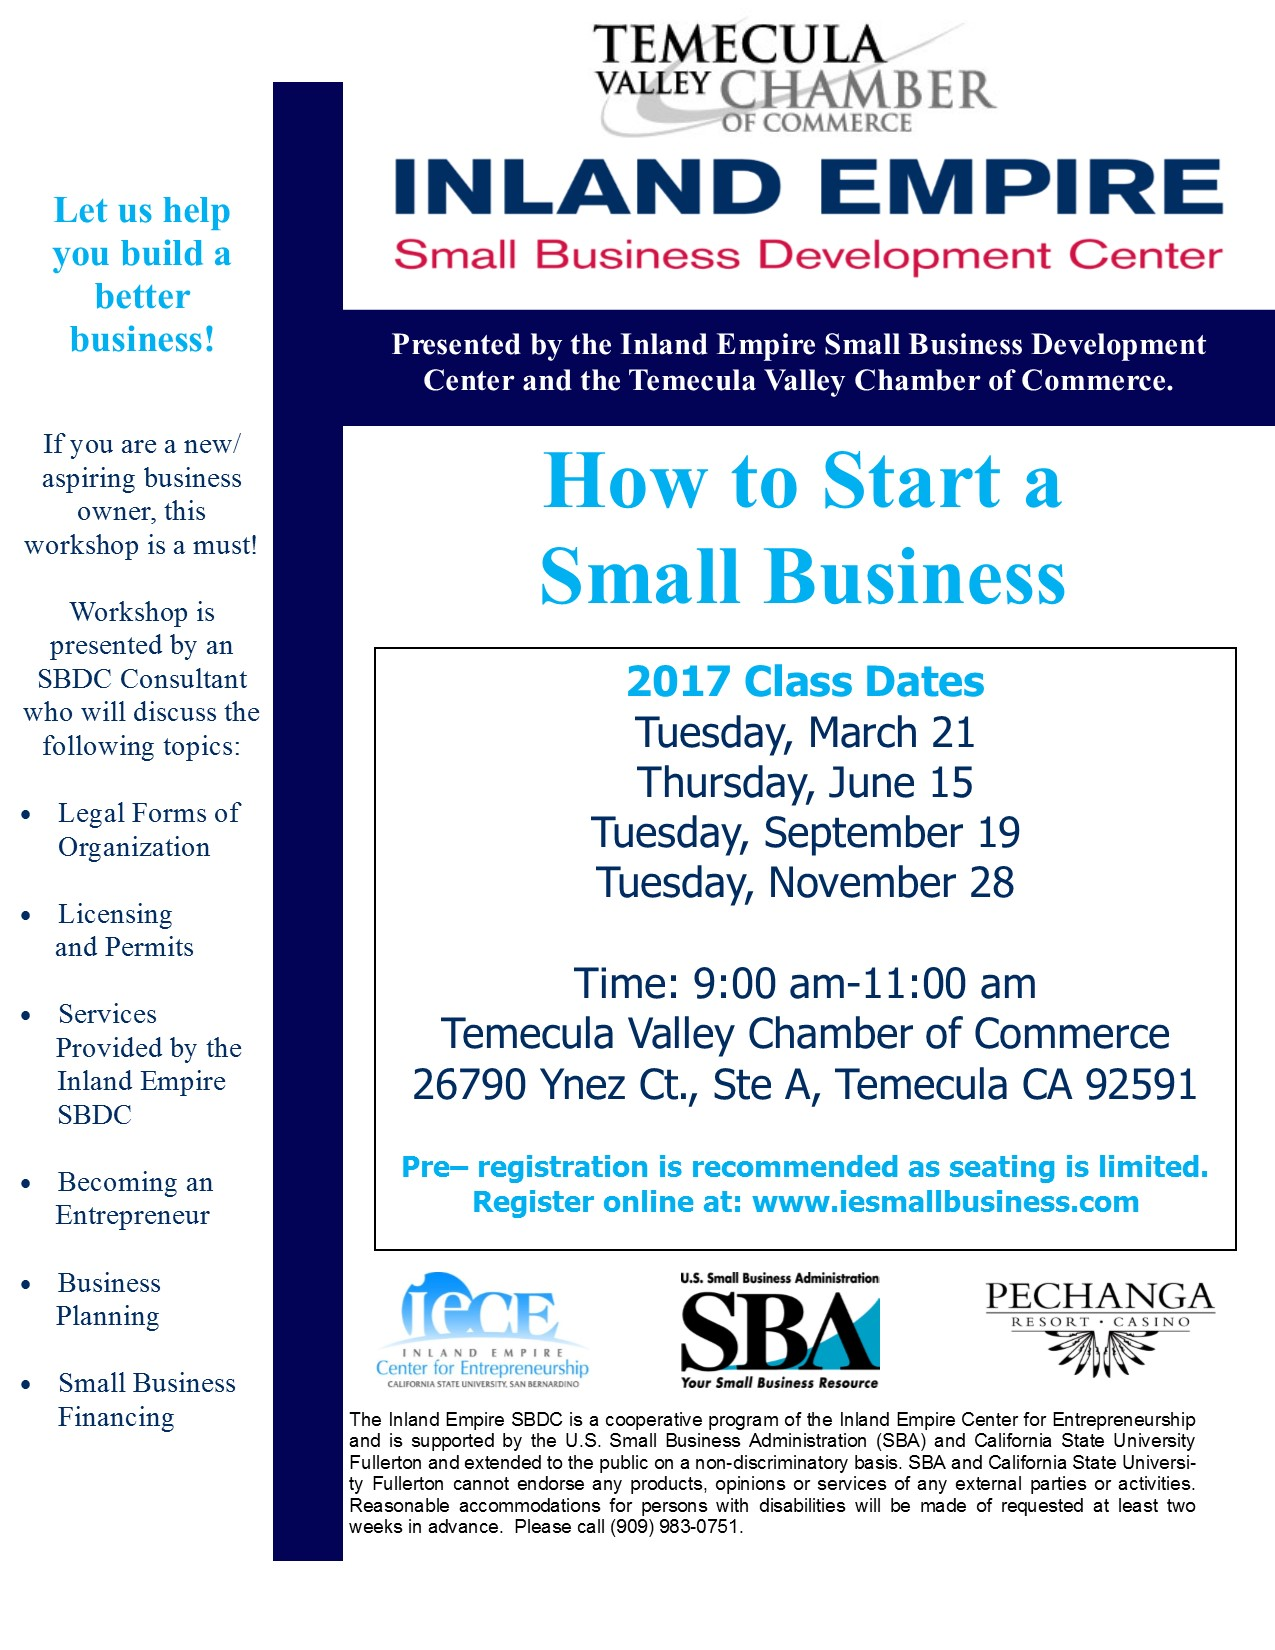 How to Start a Small Business presented by Inland Empire Small Business Development Center @ Temecula Valley Chamber of Commerce | Temecula | California | United States